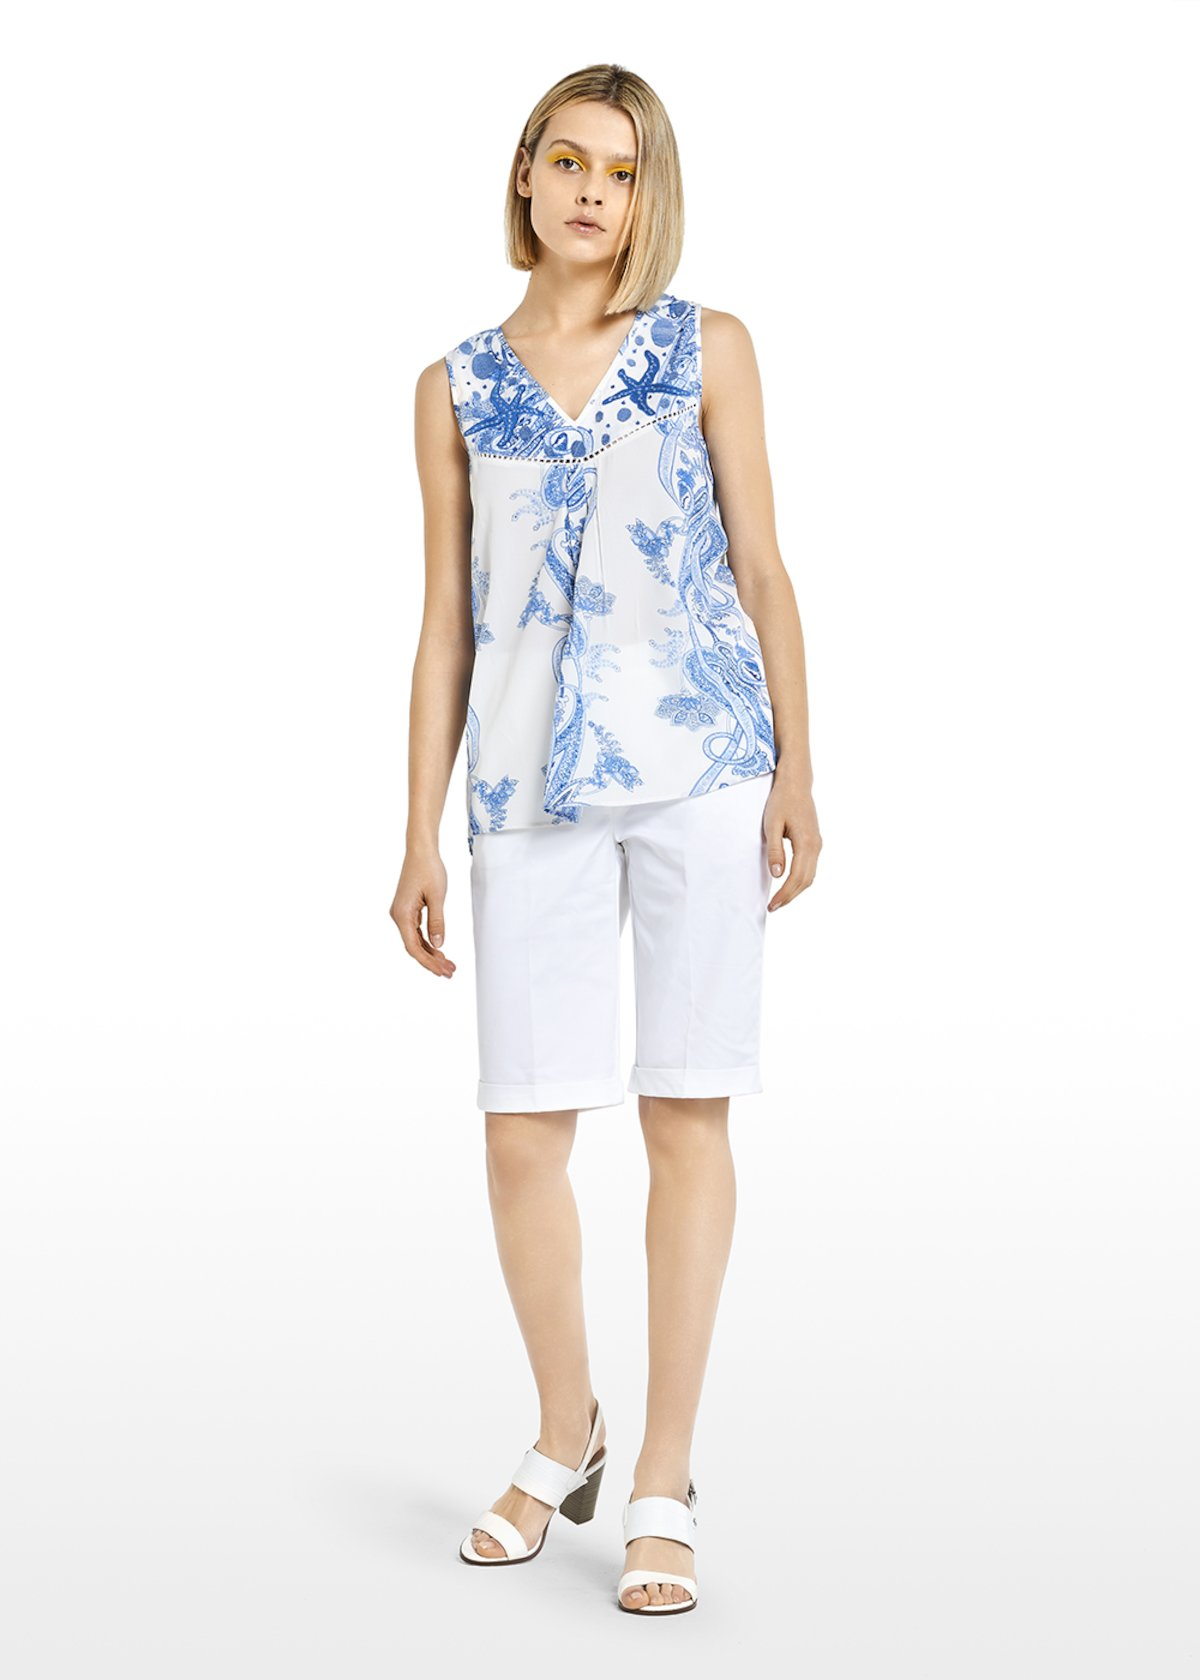 Trevor Top with chains and embroidery - White\ Mineral\ Fantasia - Woman